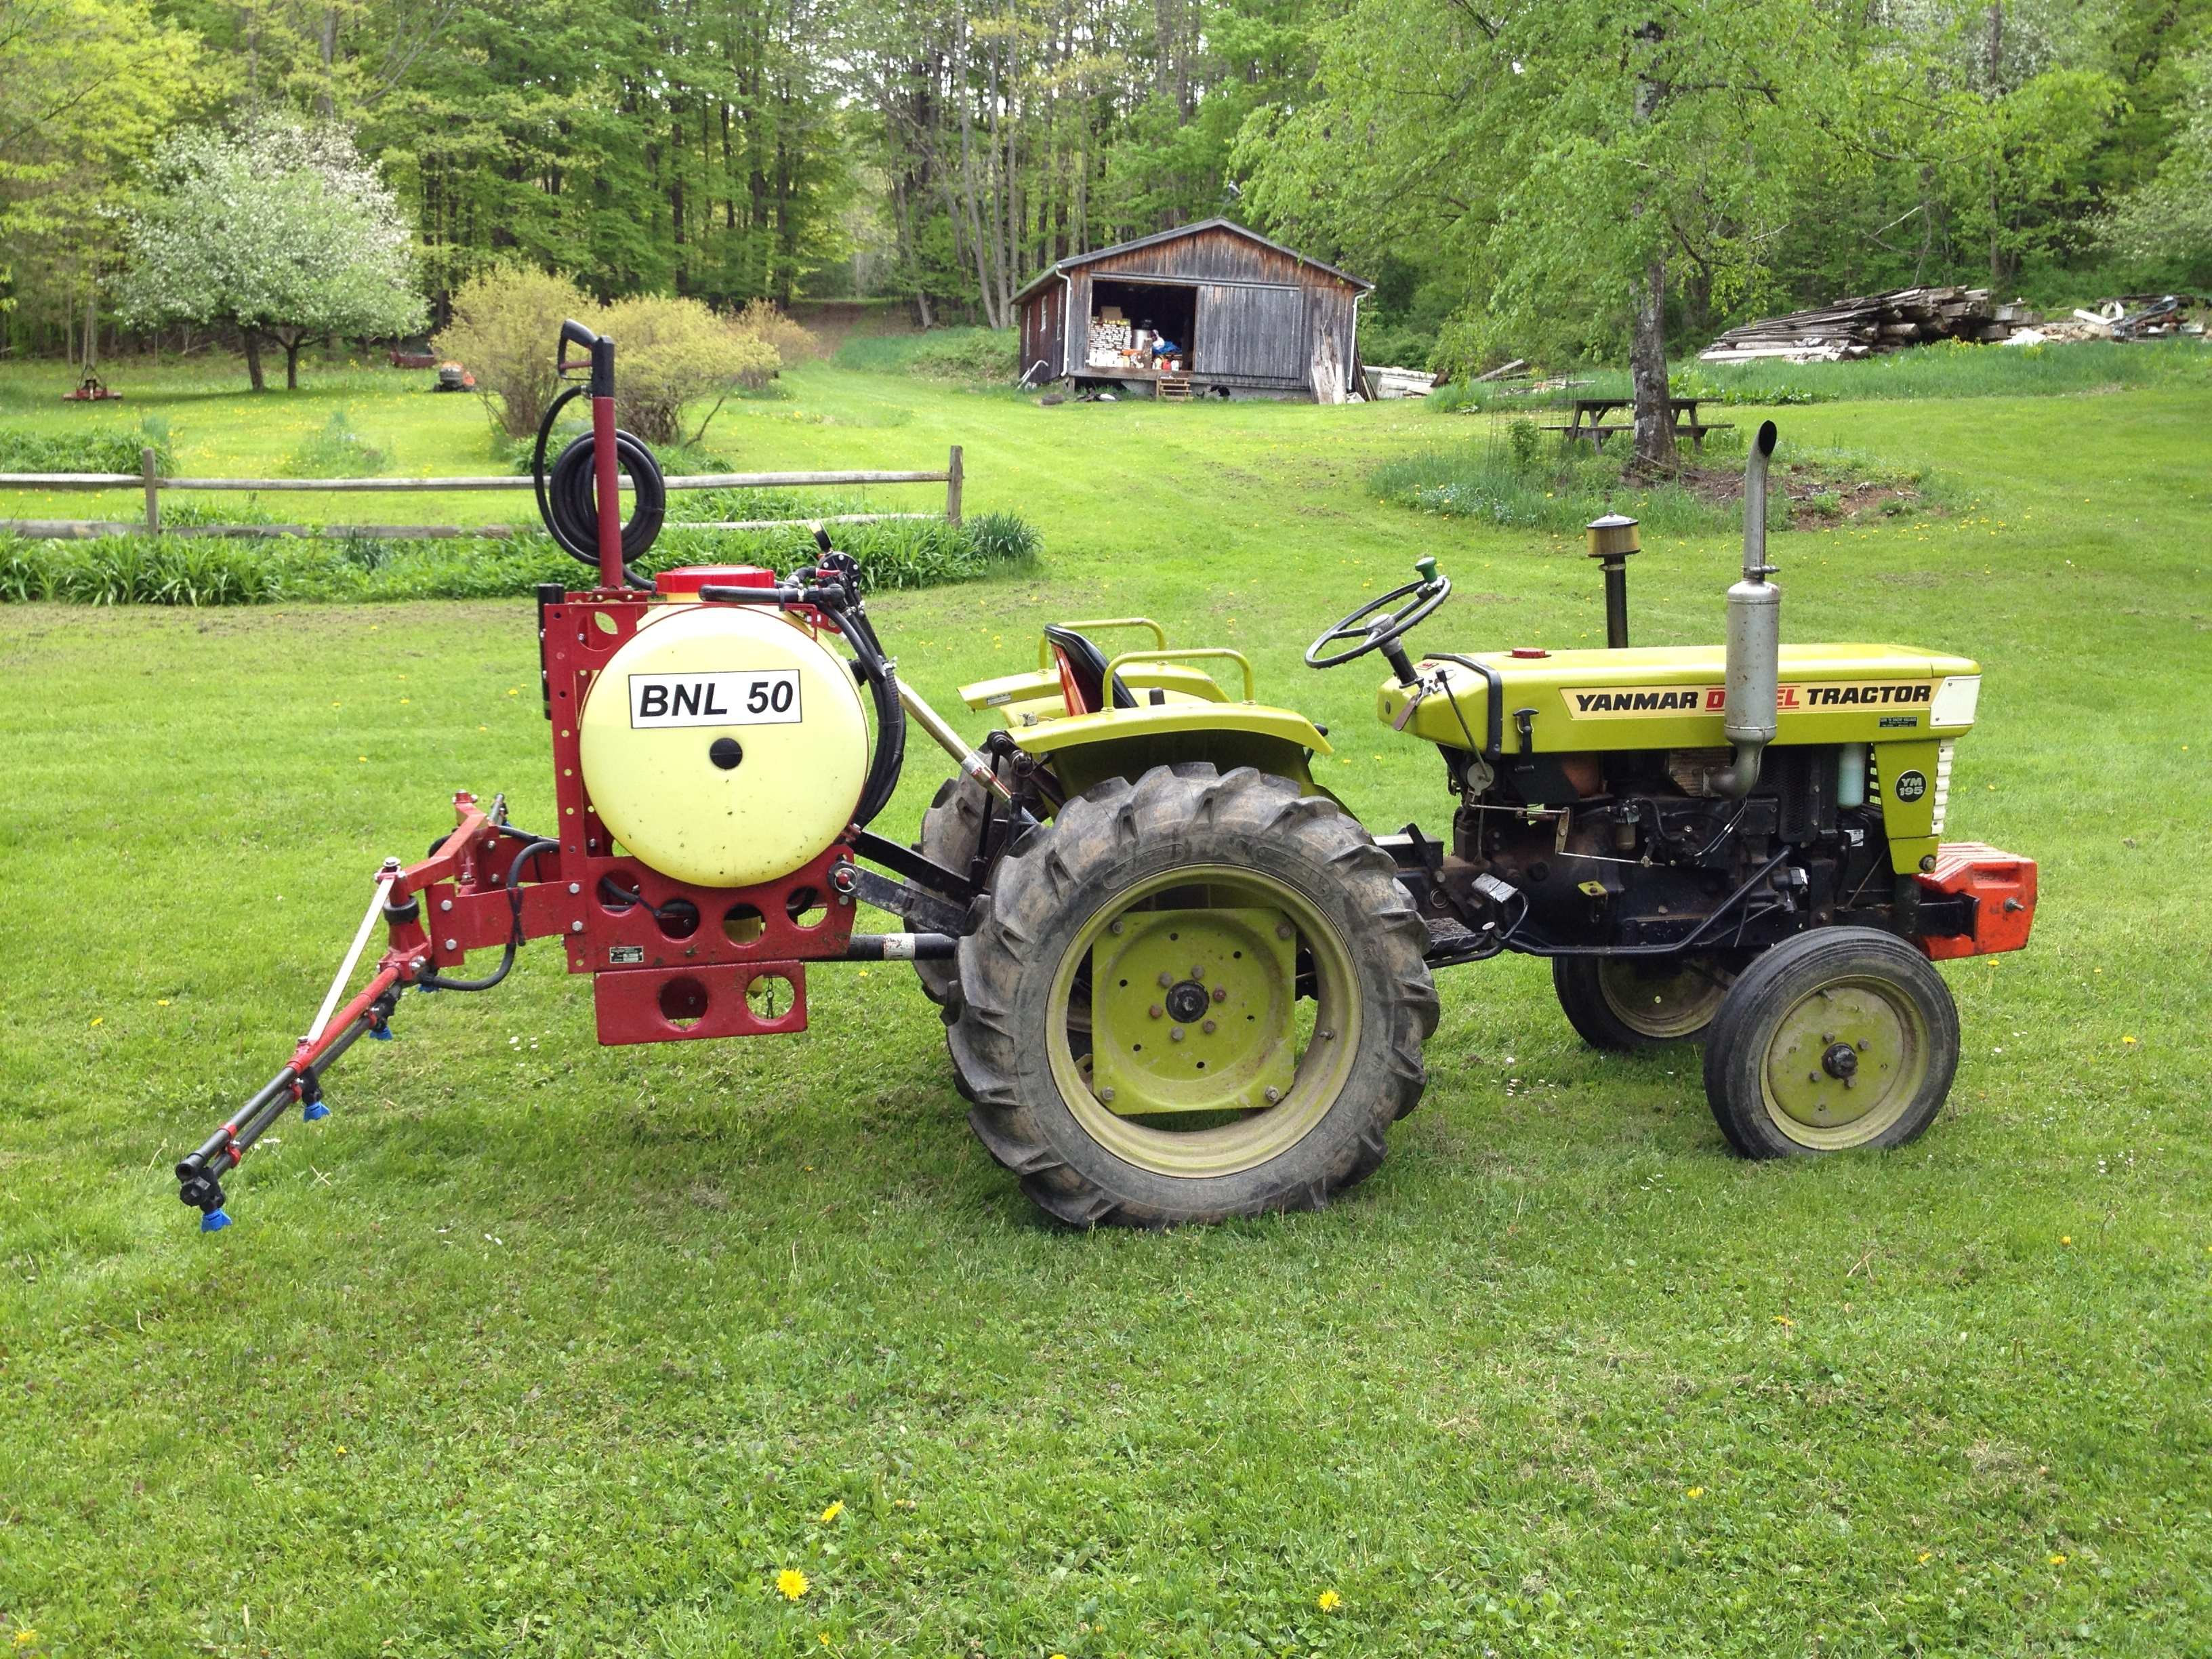 Adding weight to the front of the tractor